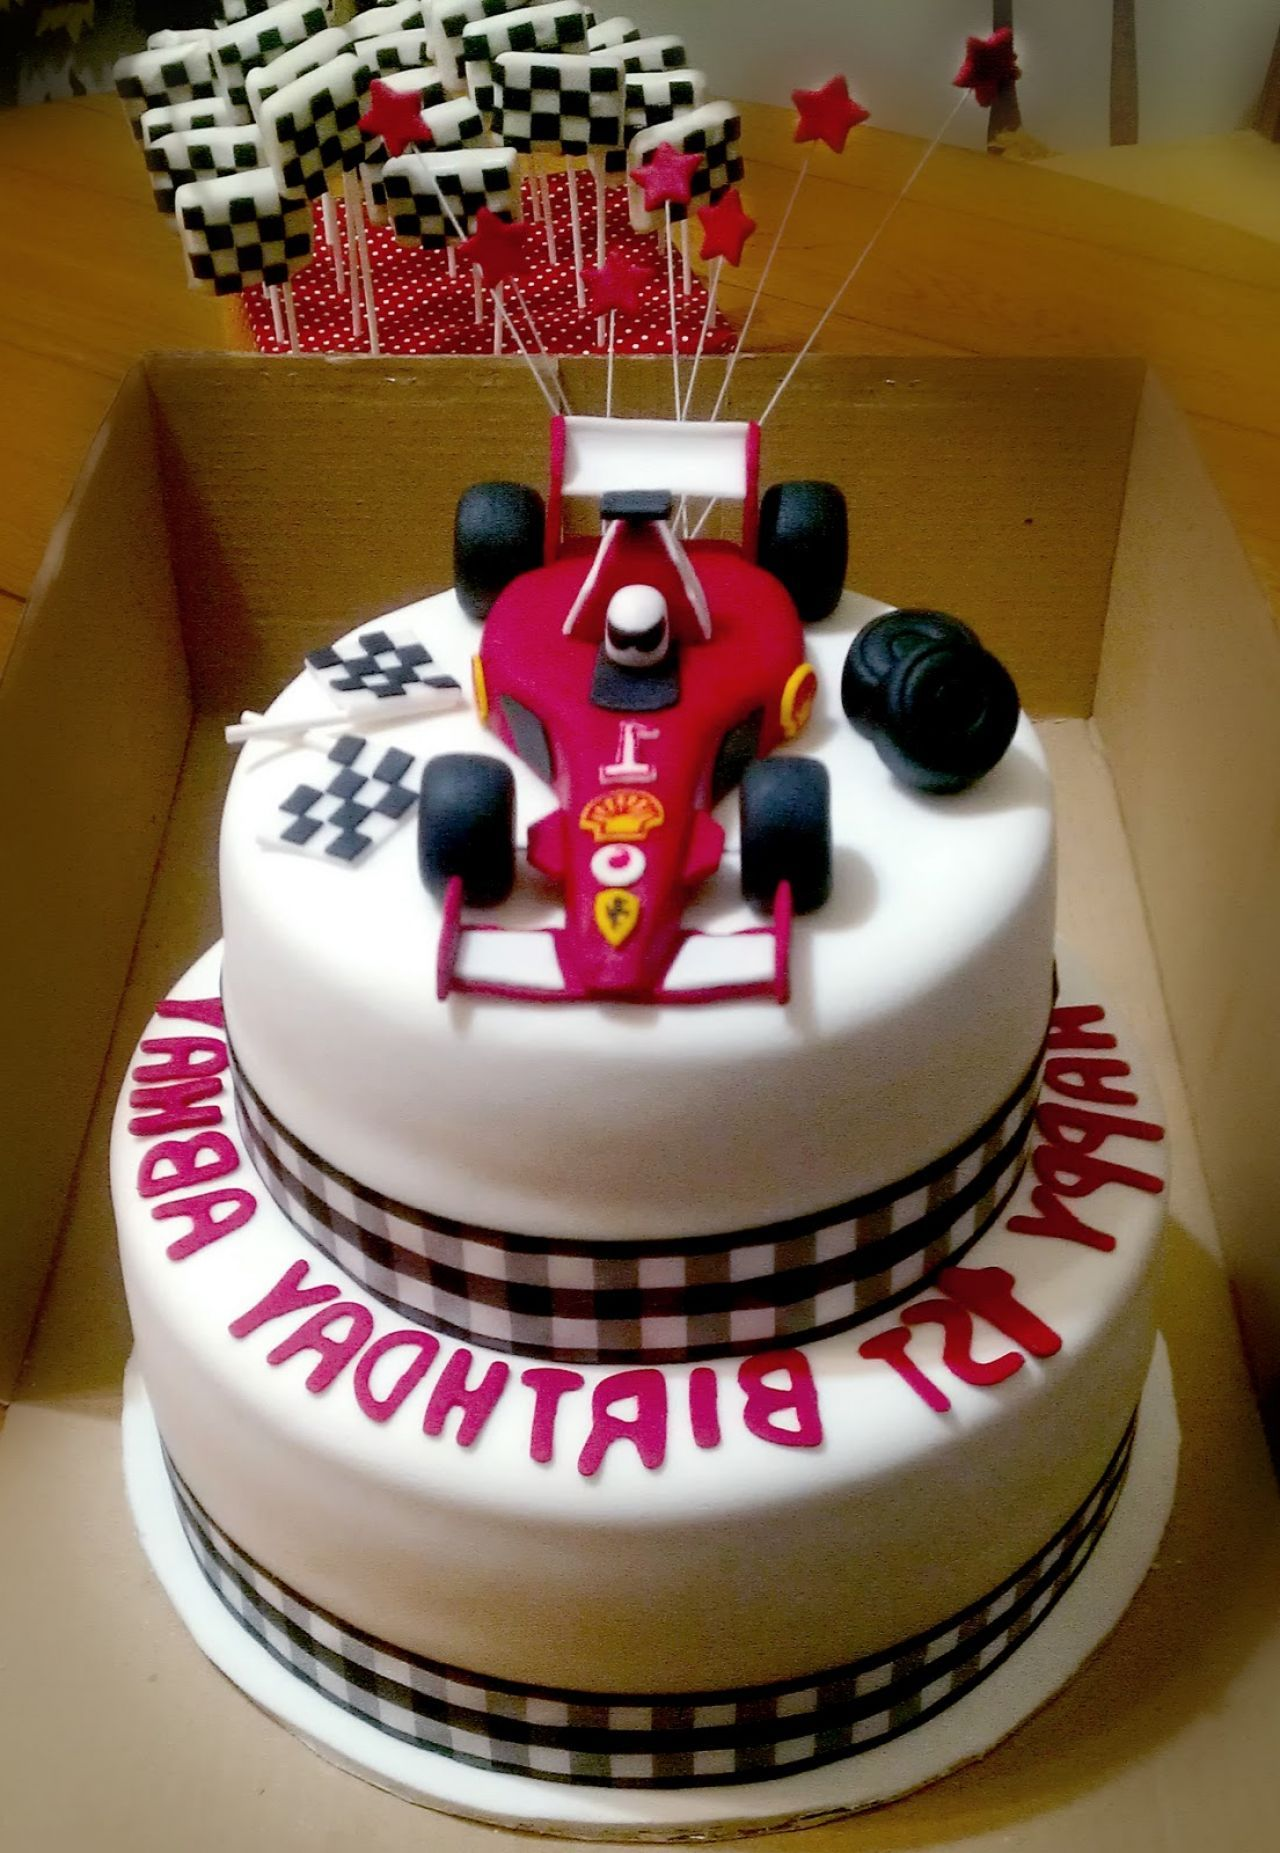 F1 Ferrari Racing Car 1st Birthday Cake With Checkered Flag Cake